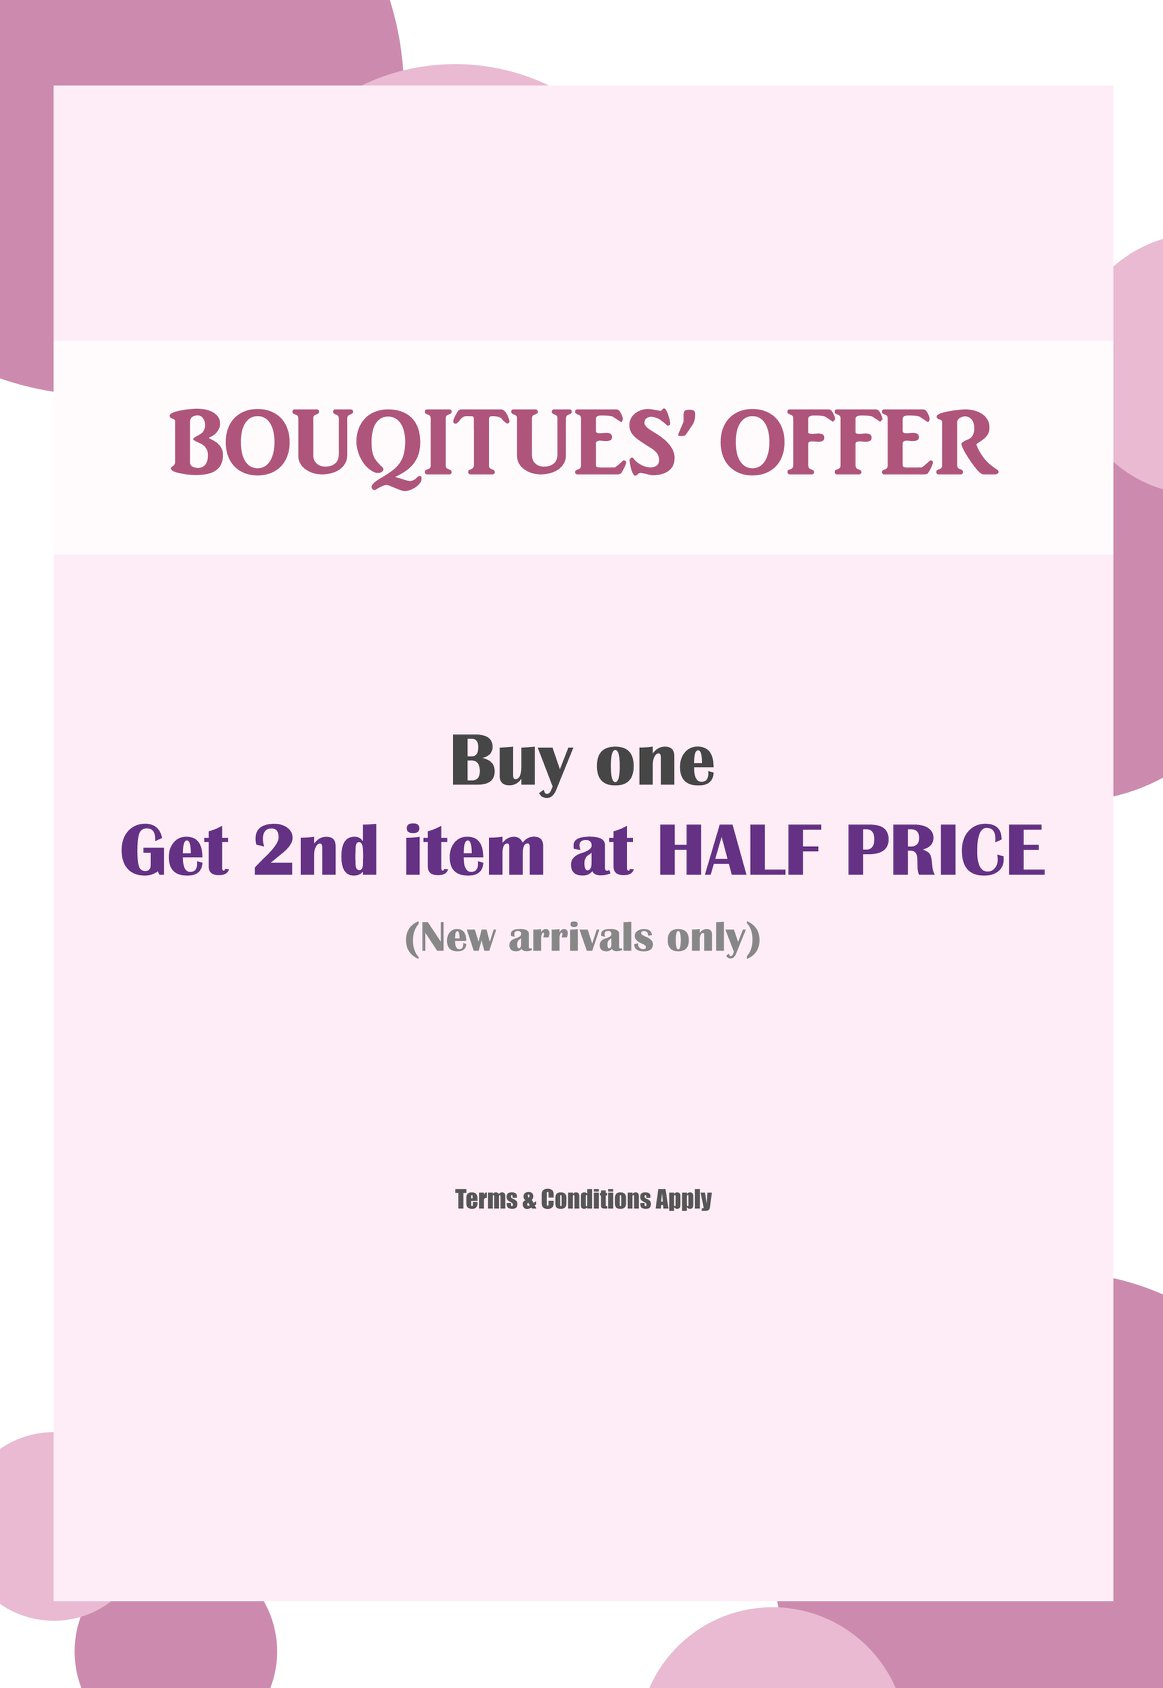 Please be invited to visit ALEXANDRE ZOUARI's Boutiques in Hong Kong! Enjoy the Special Promotion Offer for New Arrivals - Buy 1 Get 2nd item at HALF PRICE. The best gifts for moms on Mother's Day! 現凡於 ALEXANDRE ZOUARI香港專門店購買春夏新貨,即享第二件半價優惠!以最吸引價錢購入法國全人手製髮飾,在母親節向媽媽送上暖暖心意! For any updates of AZ:...